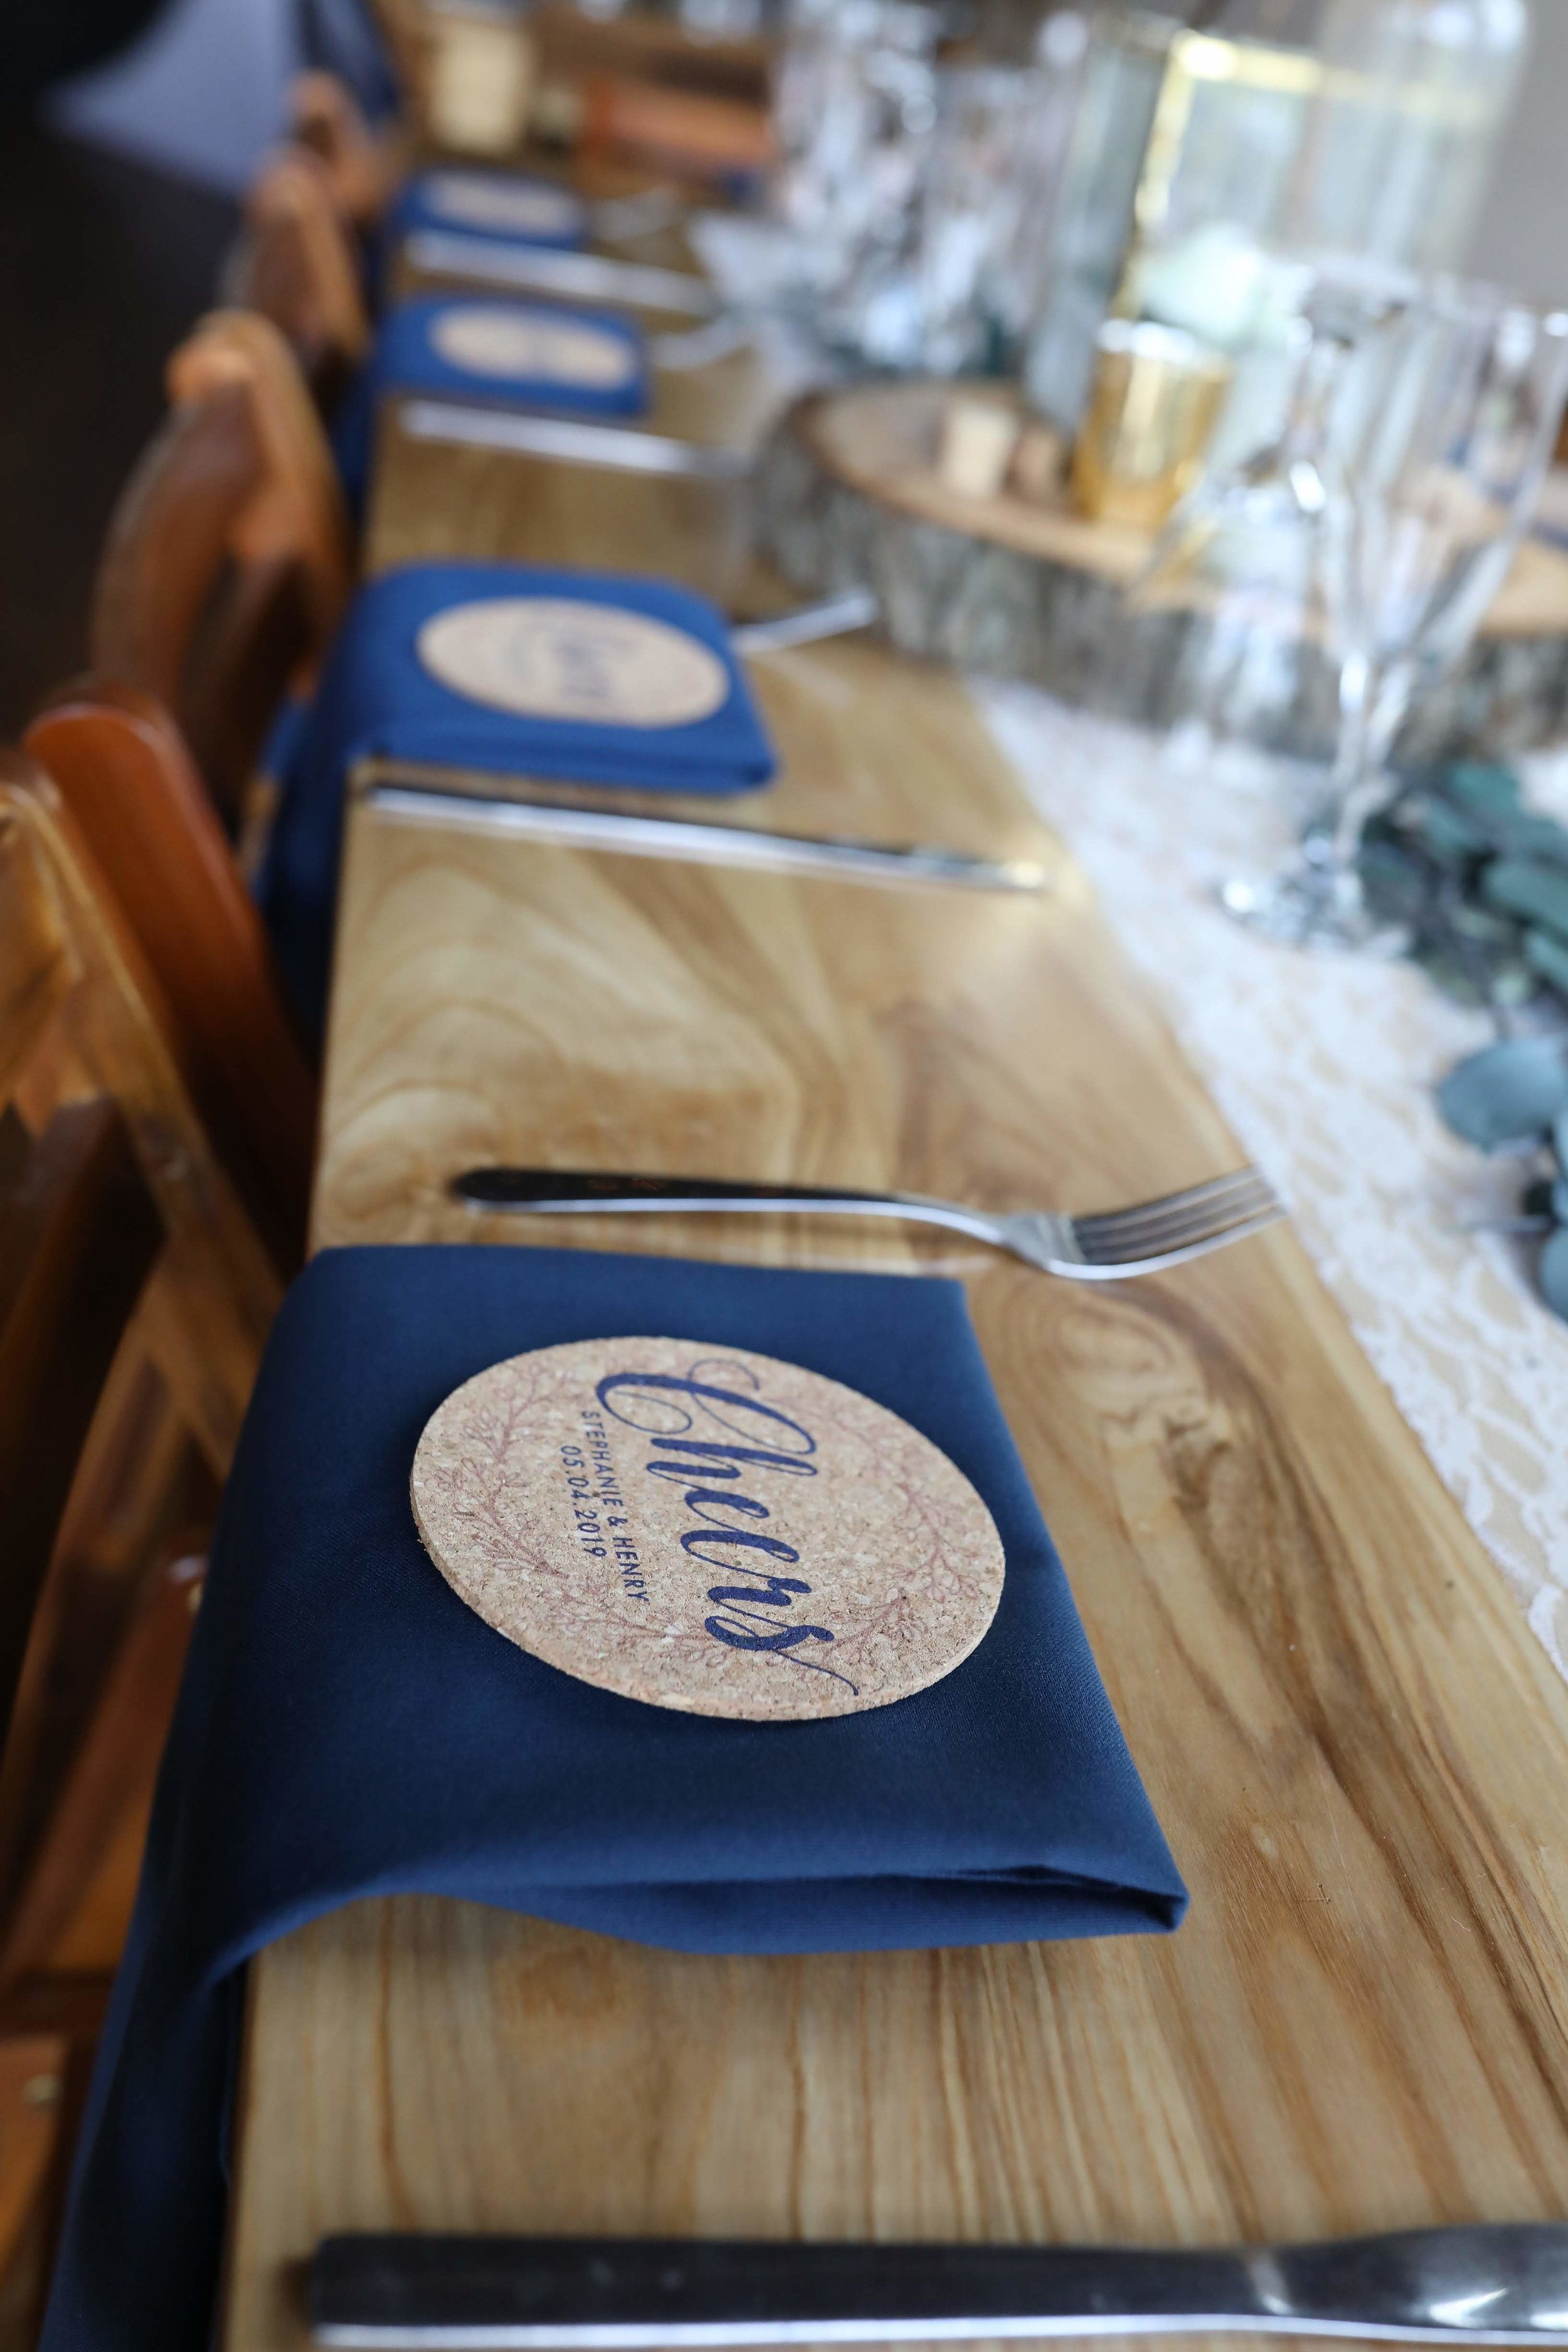 Custom cork coaster favors accented their navy linen napkins at each place setting.